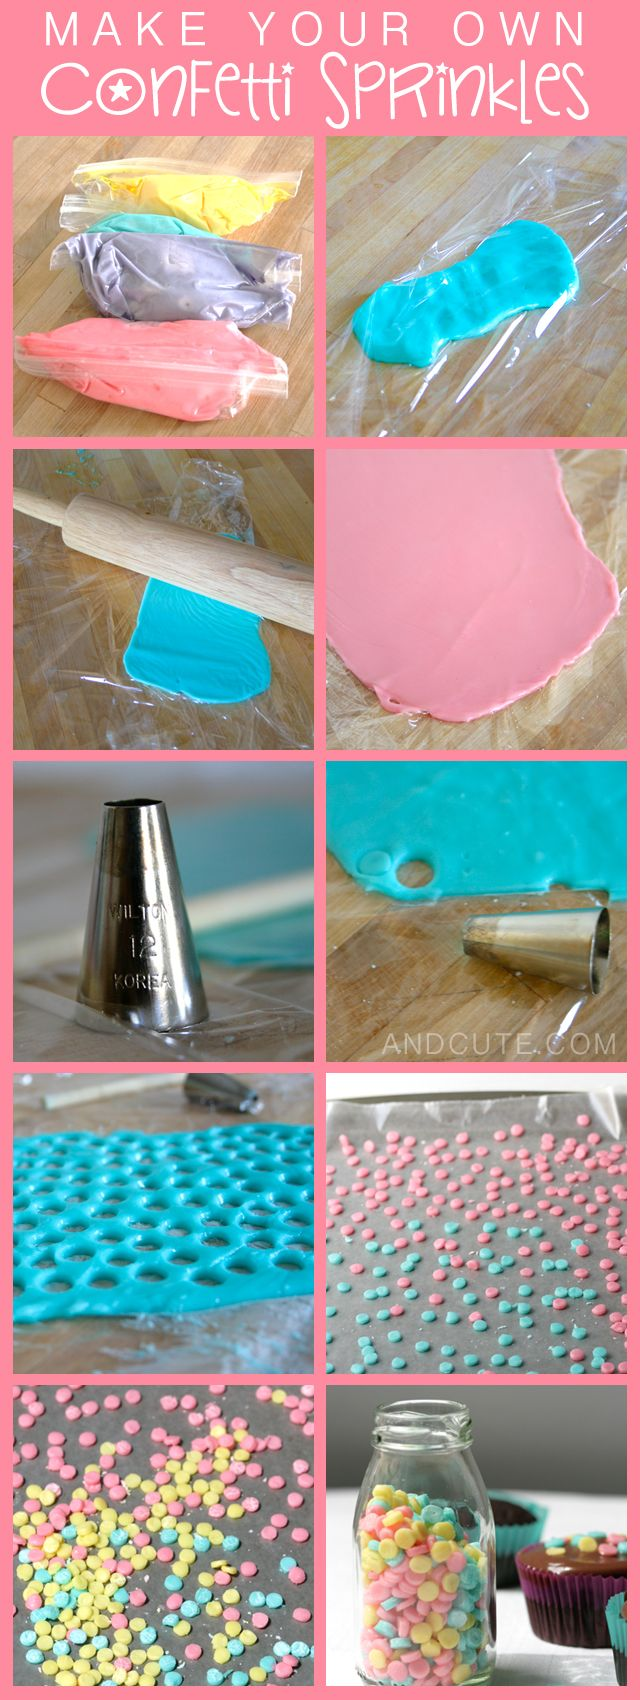 How to make Confetti Sprinkles @Holli Downs Burkart ...this might be cute for the party